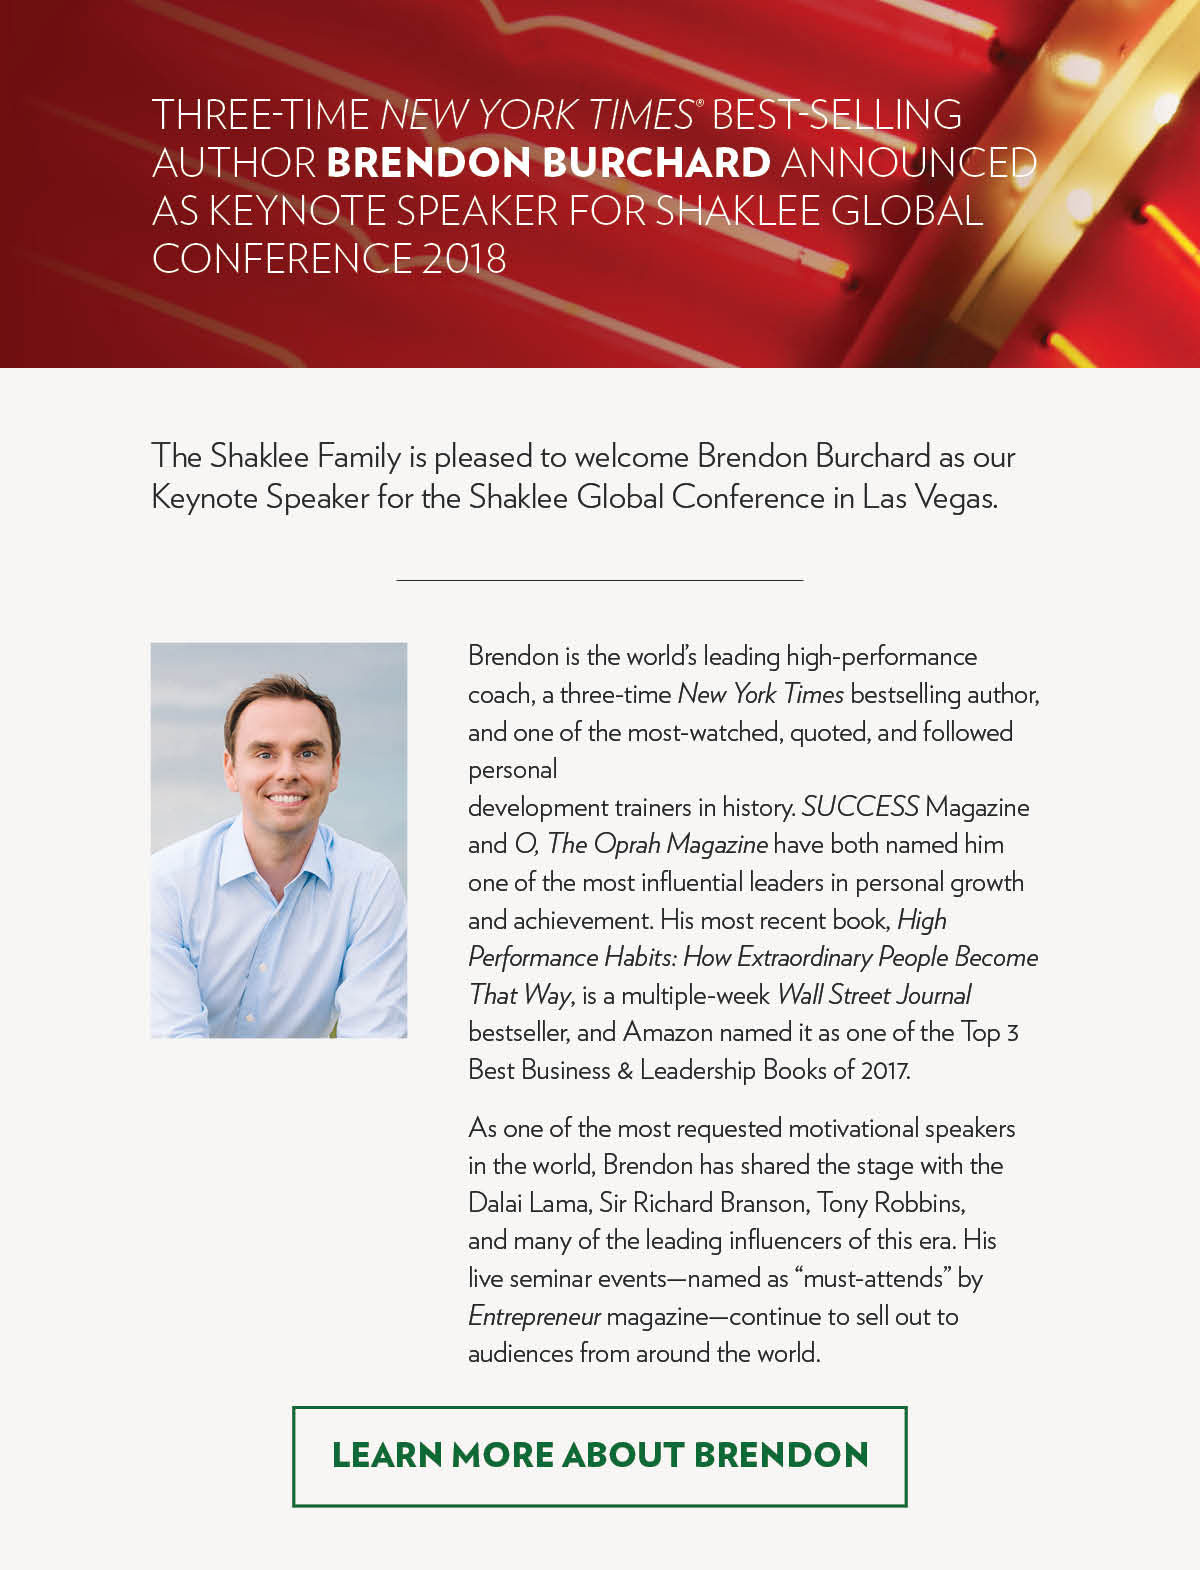 Three Time New York Times® Best-selling author Brendon Burchard announced as Keynote Speaker for Shaklee Global Conference 2018